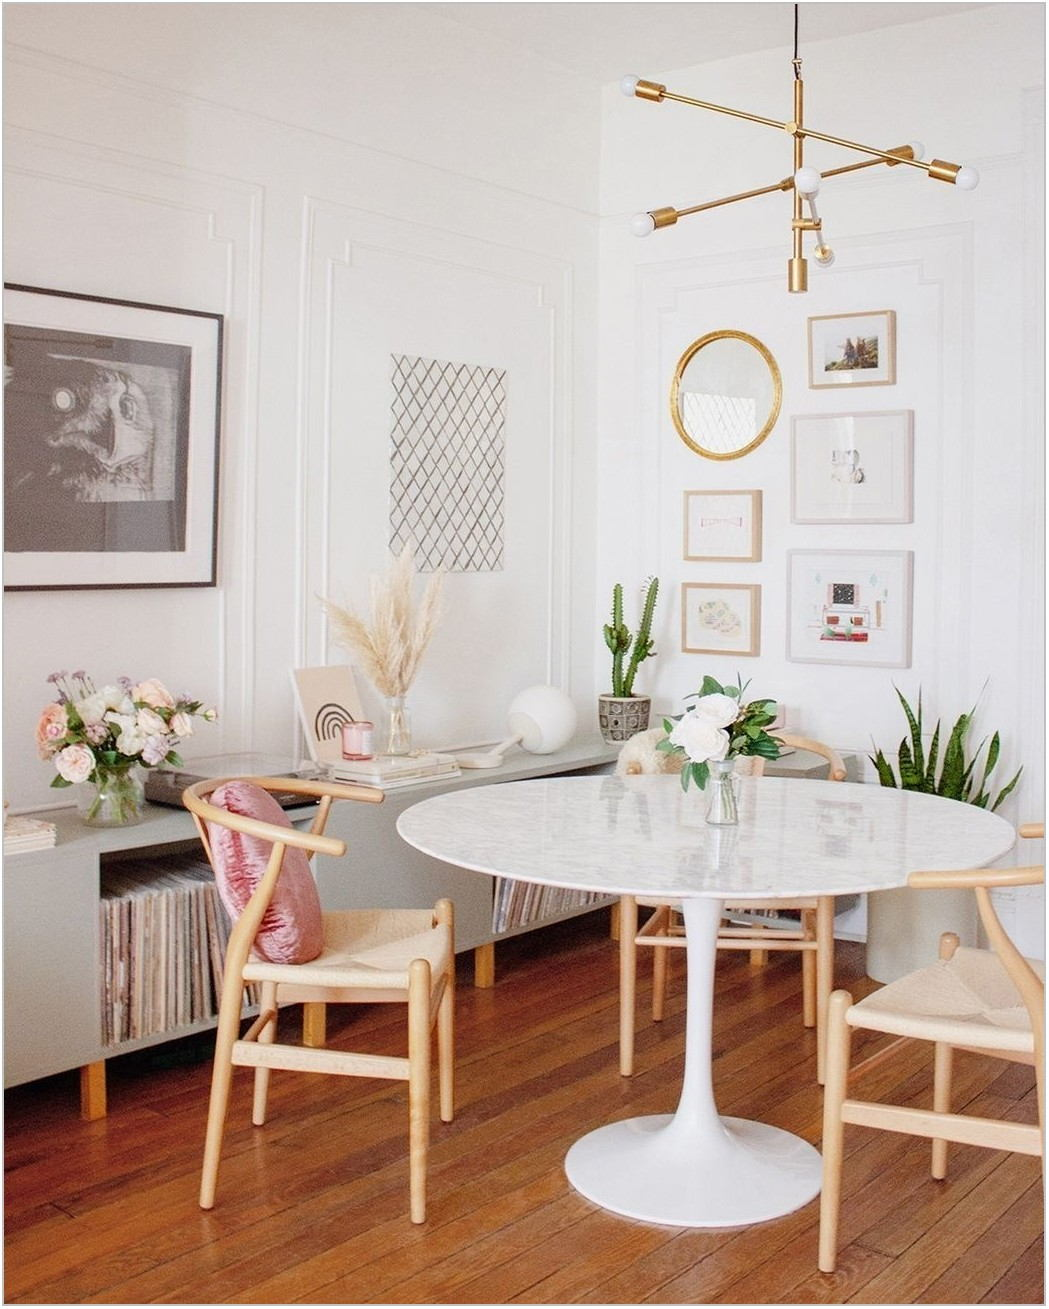 Small Dining Room Ideas On A Budget